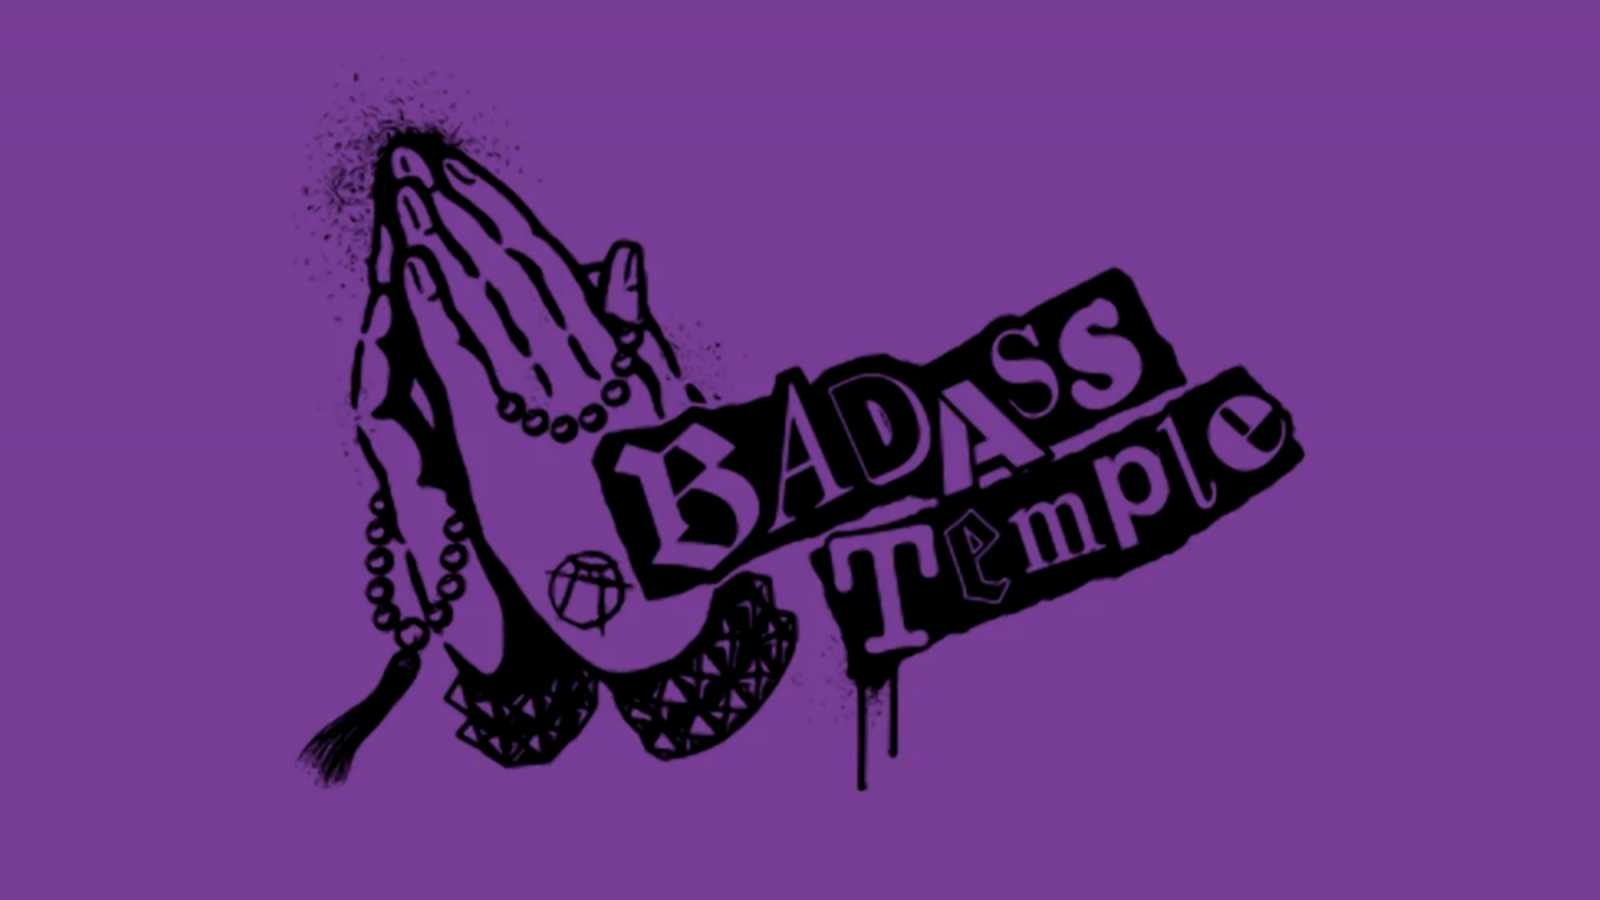 Bad Ass Temple © EVIL LINE RECORDS. All rights reserved.